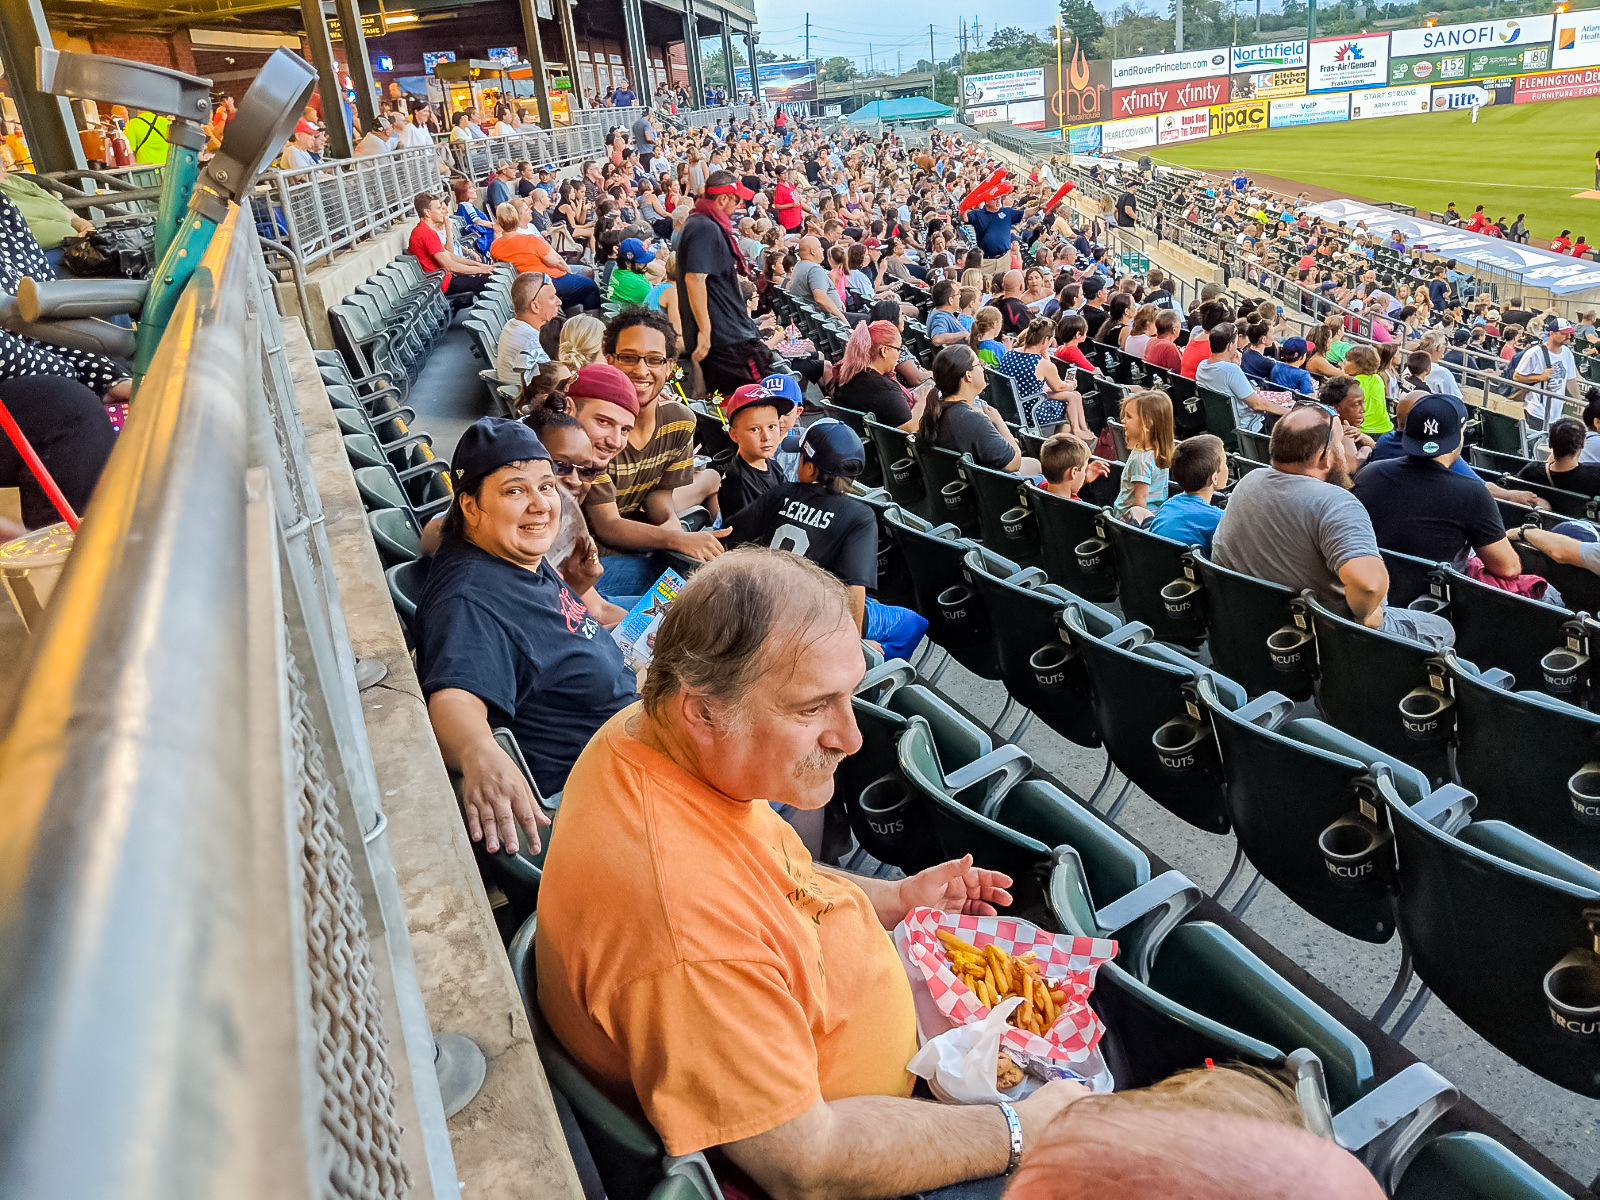 Somerset Patriots 2018-193417.jpg